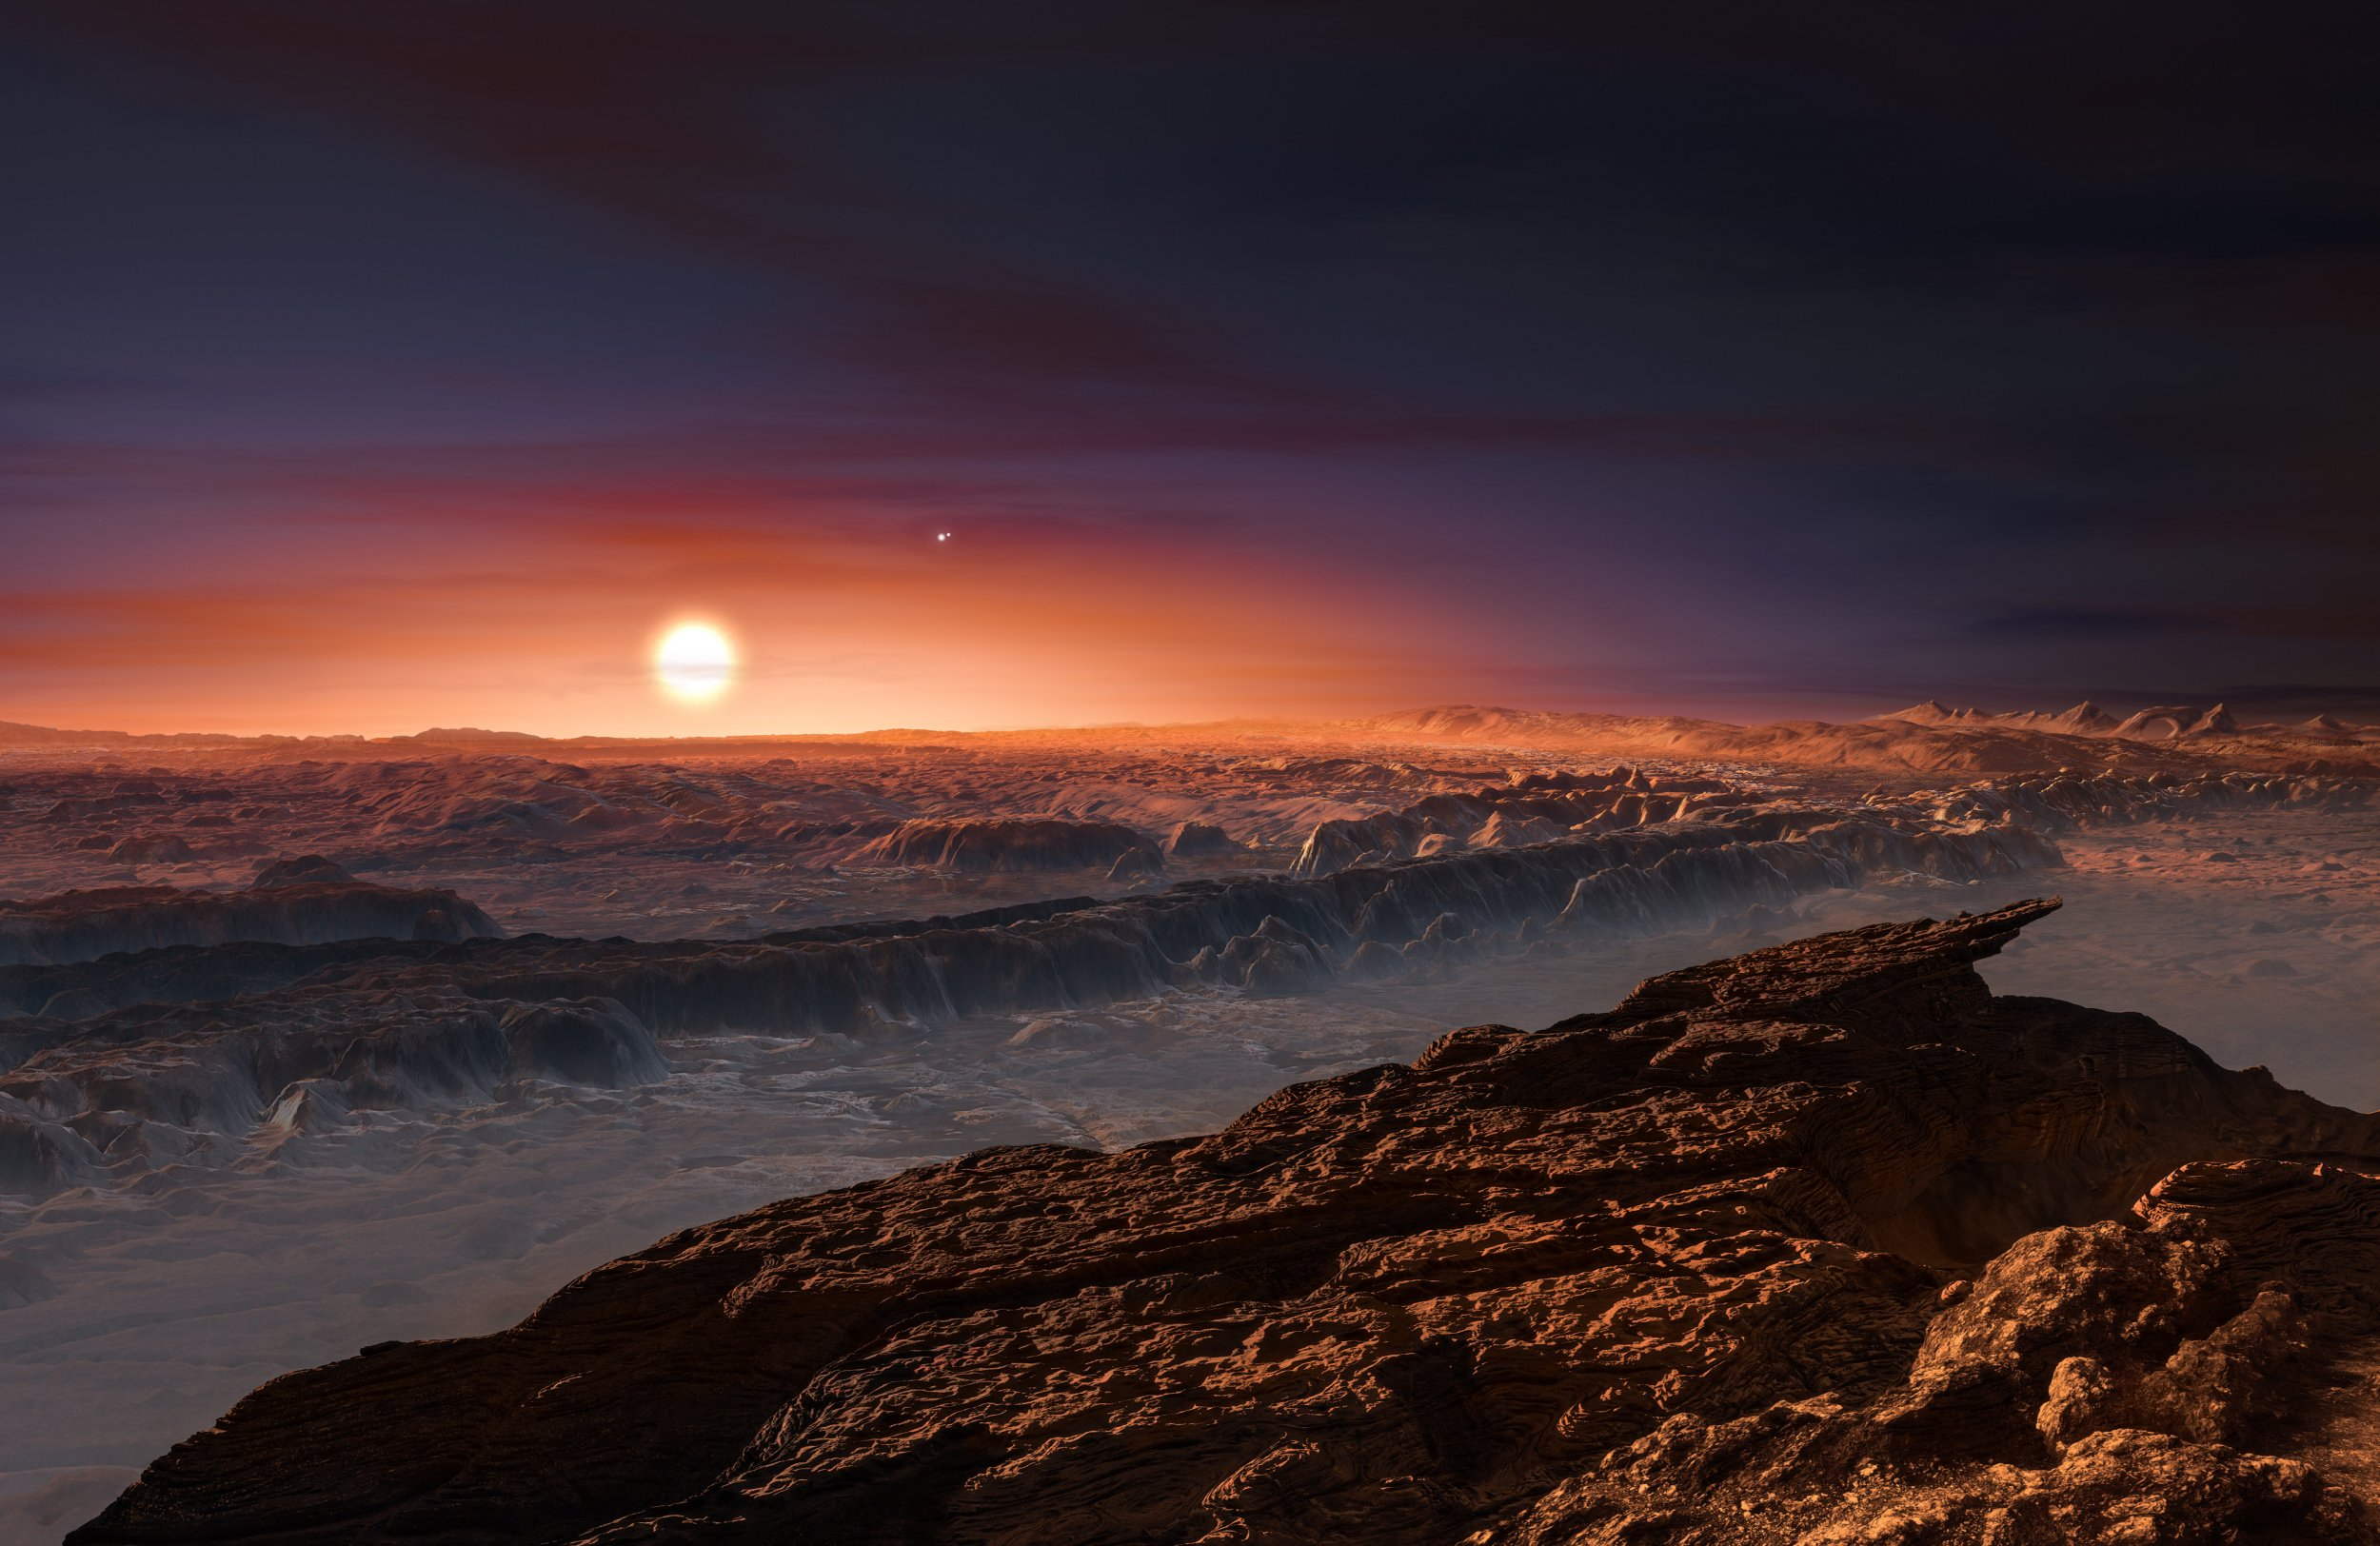 Aliens Could Be Just Like Us—Darwin's Theory of Evolution Means E.T. Would Be Human-Like